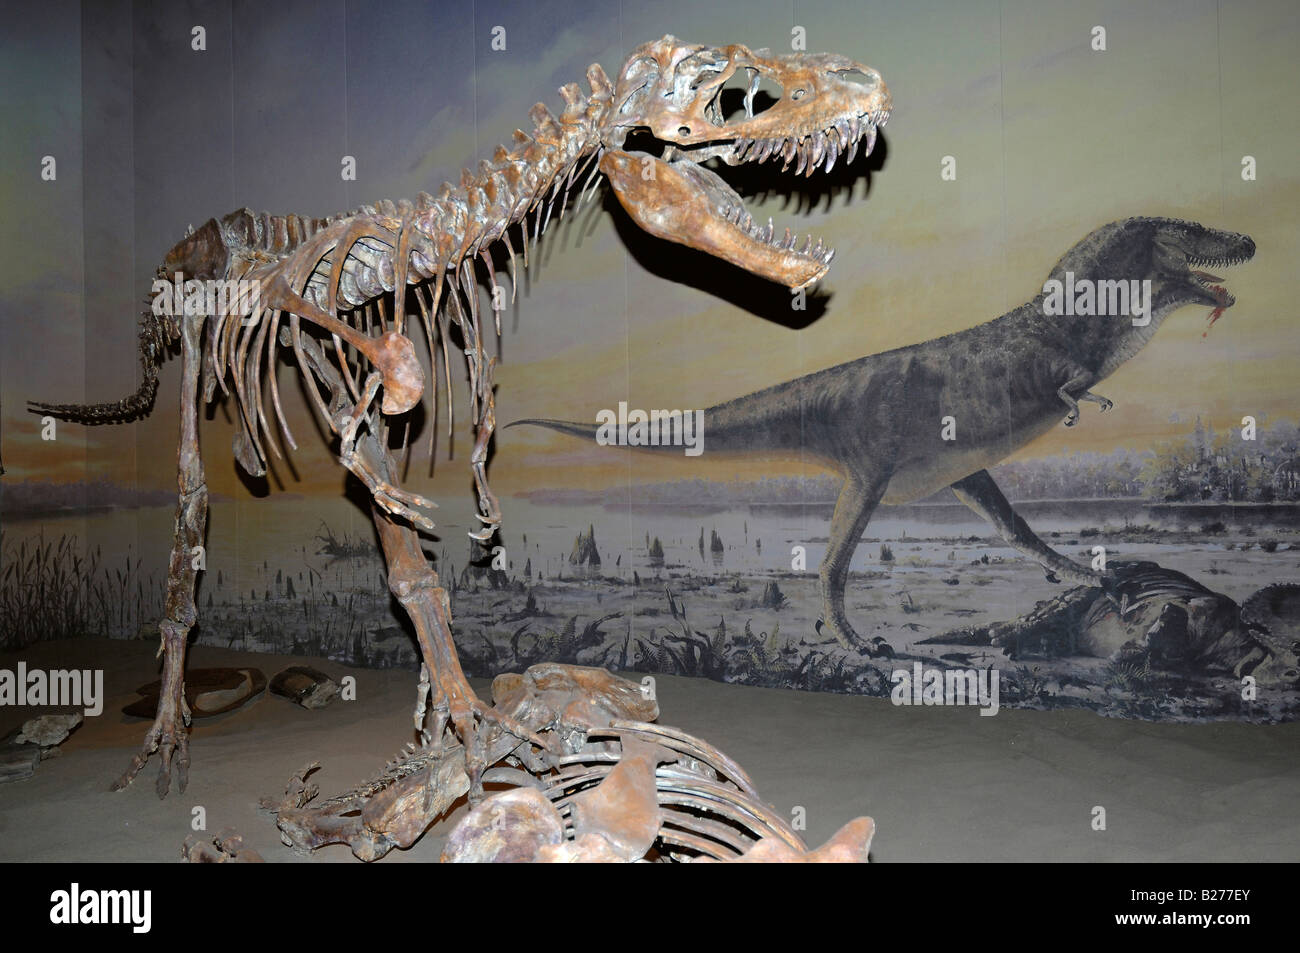 Horizontal format of skeleton of an Albertosaurus dinosaur at The Royal Tyrrell Museum at Drumheller, Alberta, Canada - Stock Image